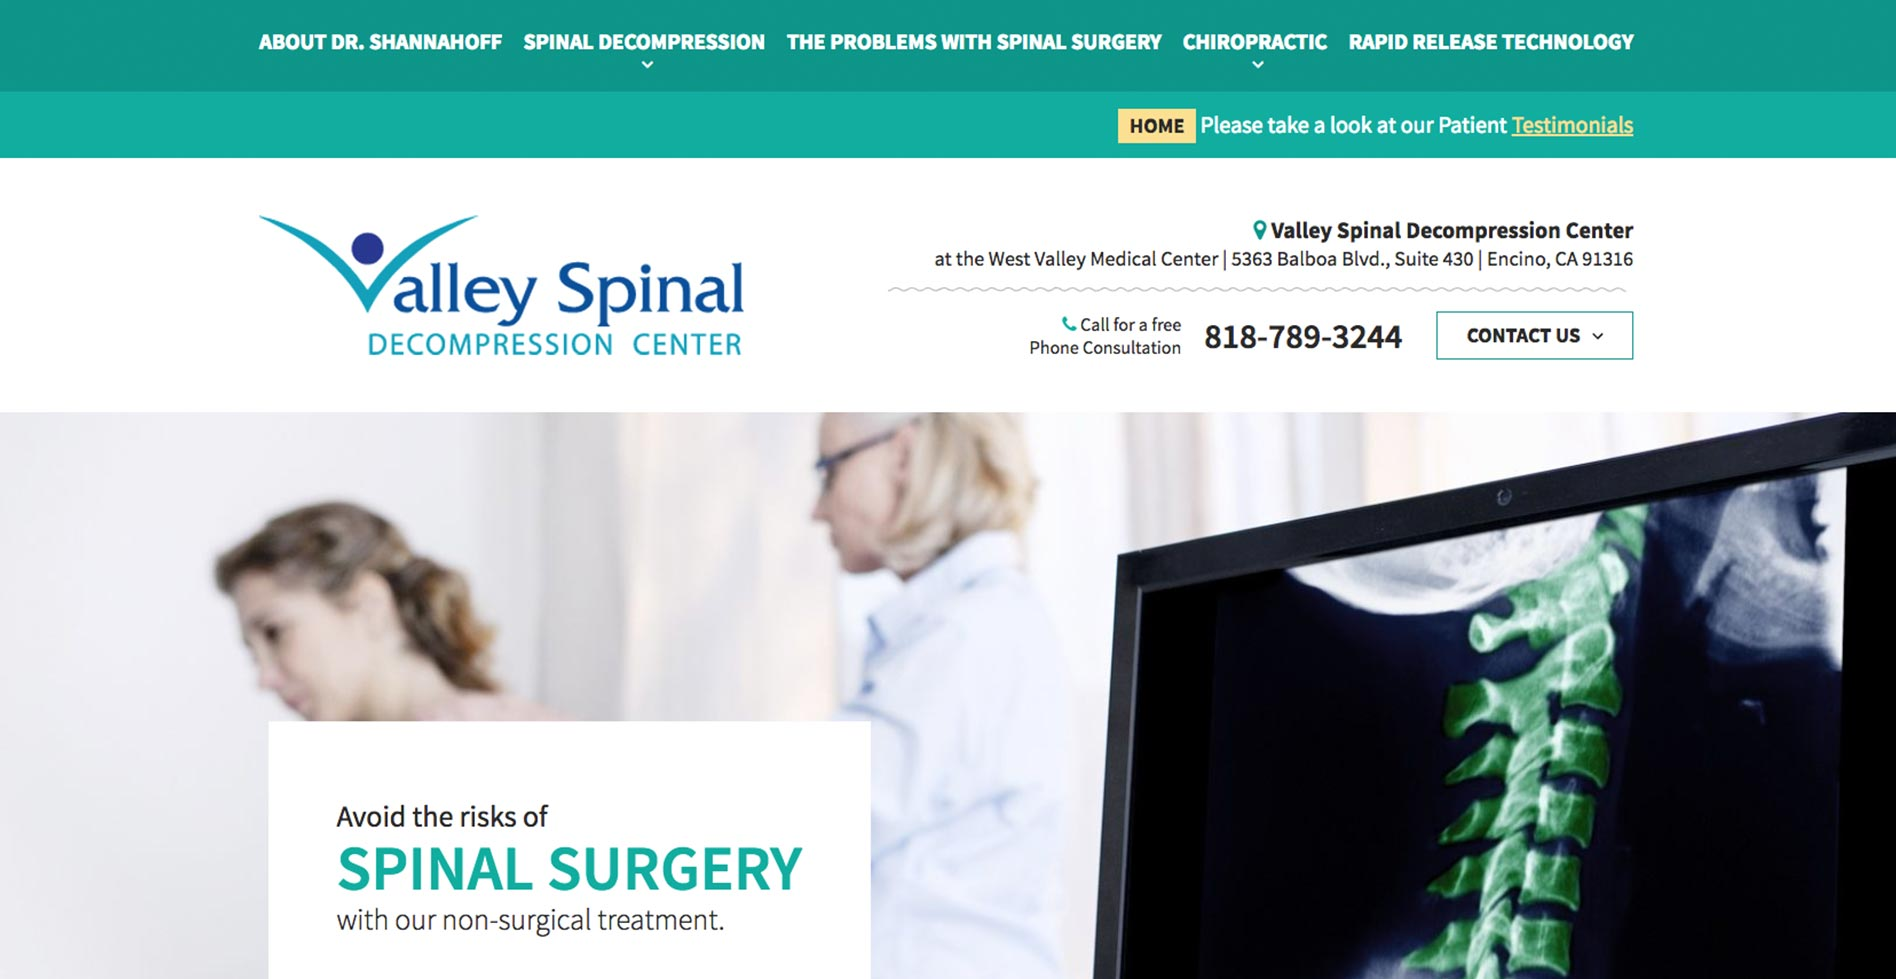 Valley Spinal Decompression Center Website